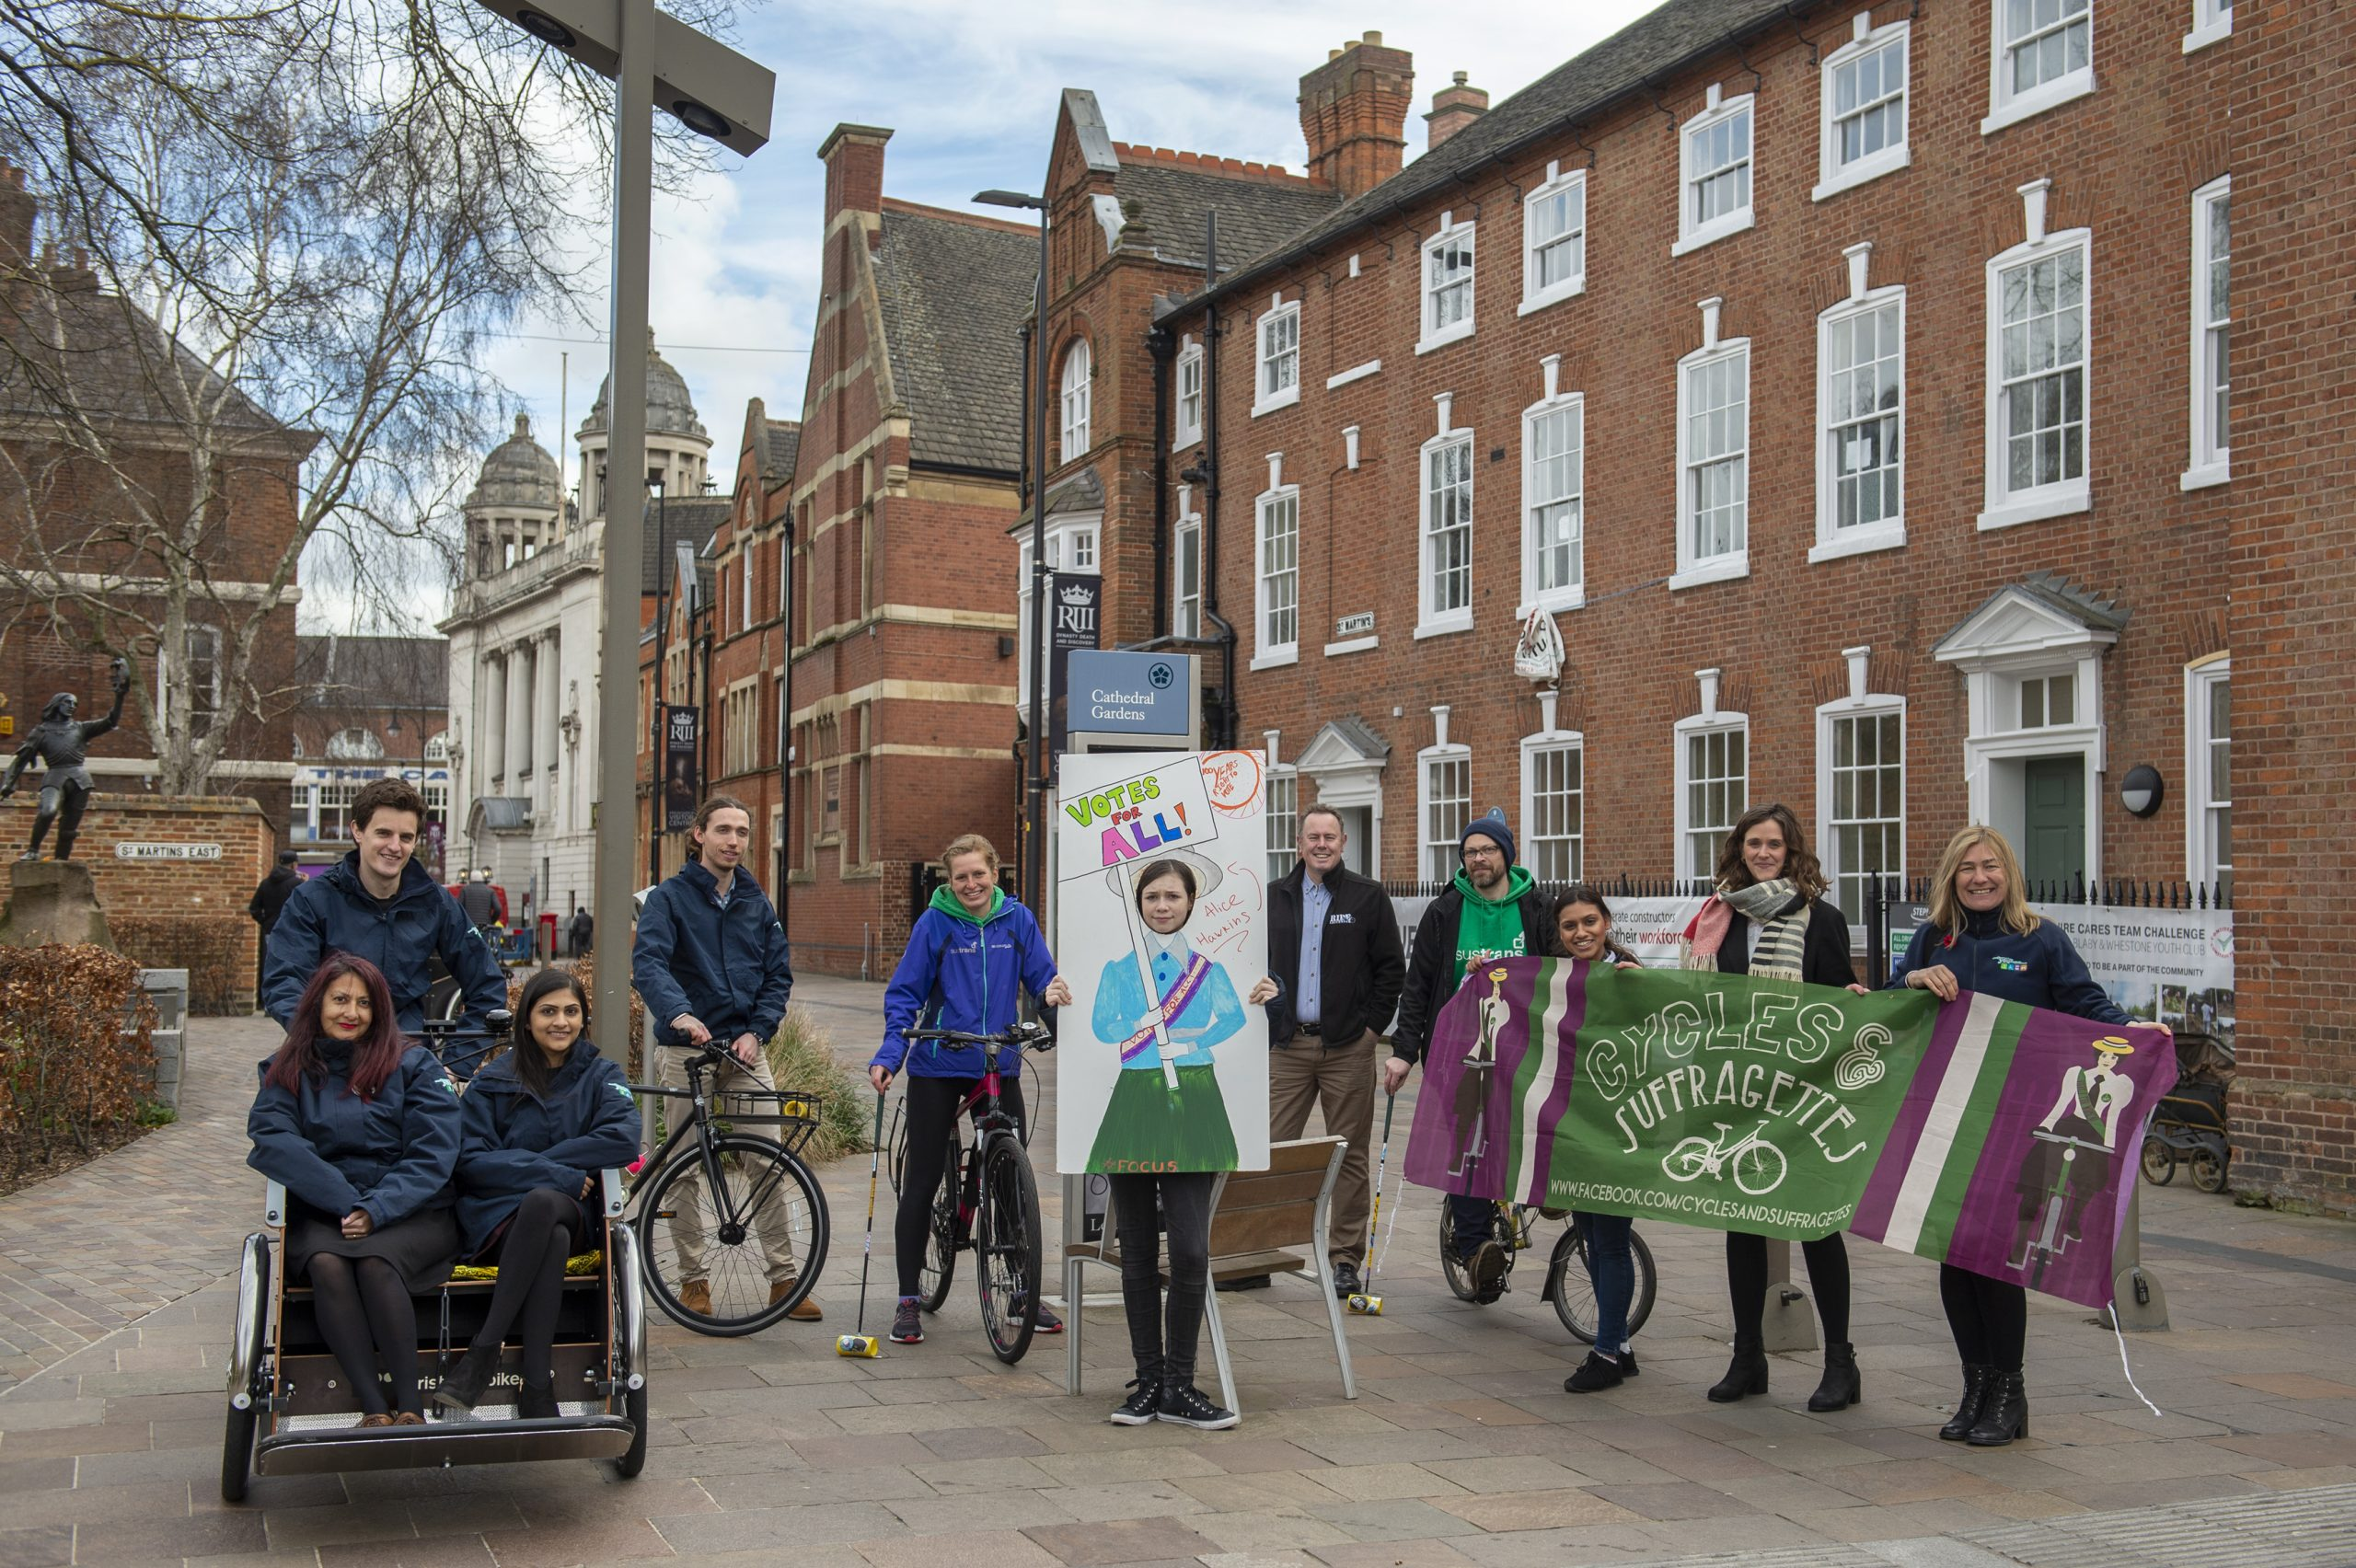 Celebrating Leicester Suffragettes